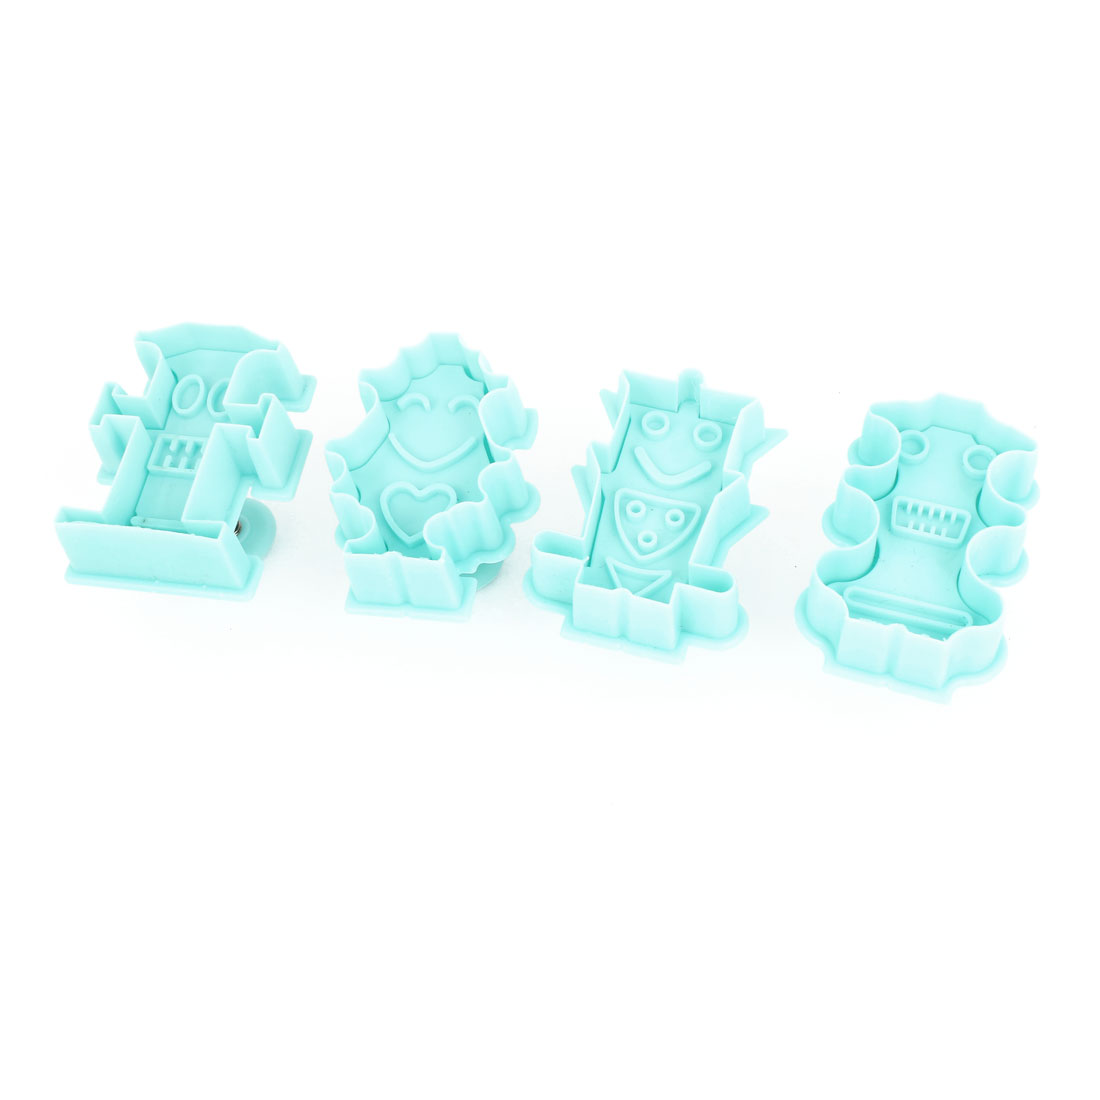 4 Pieces Robot Style Cake Shaping Cutter Cookie Pastry Plunger Mold Aqua